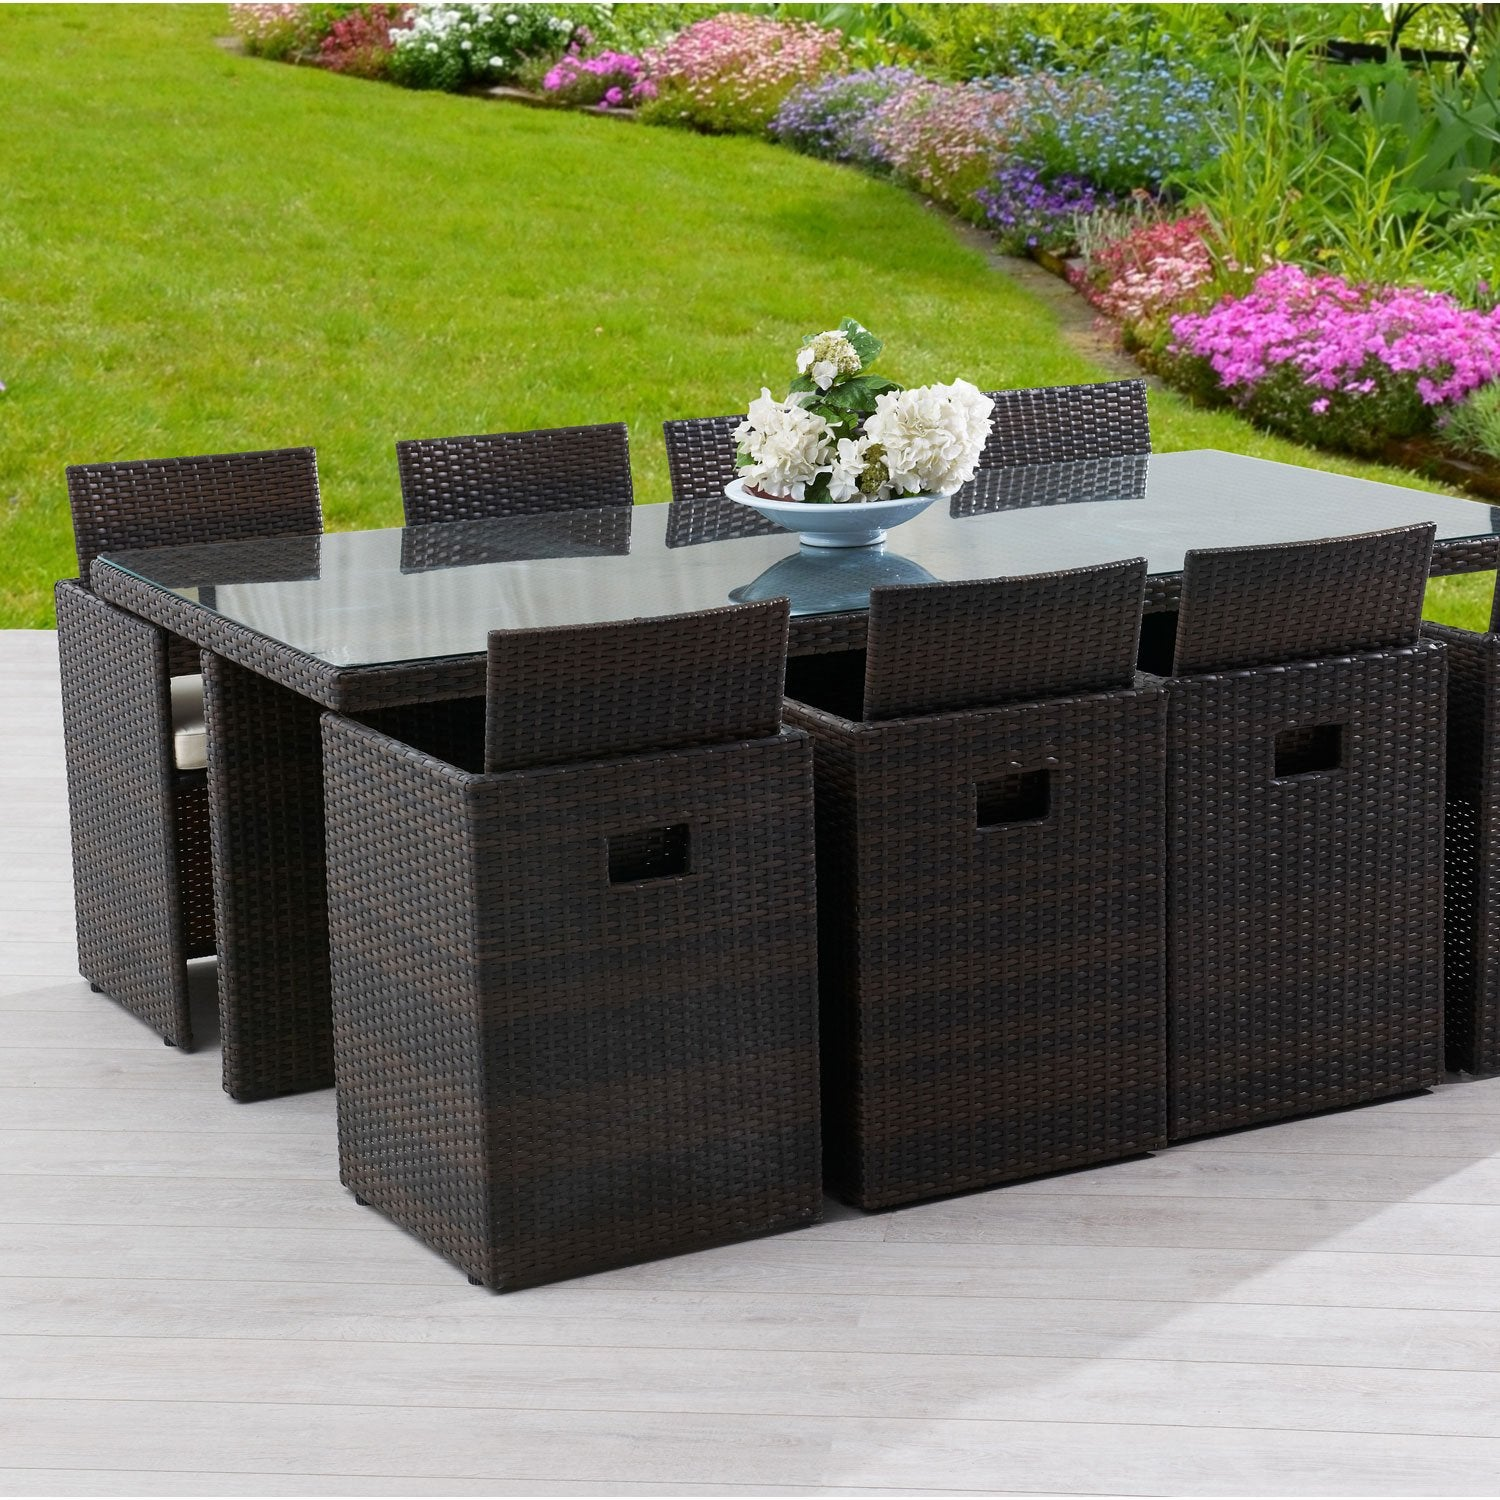 Salon de jardin encastrable r sine tress e marron 1 table for Ensemble jardin bois pas cher